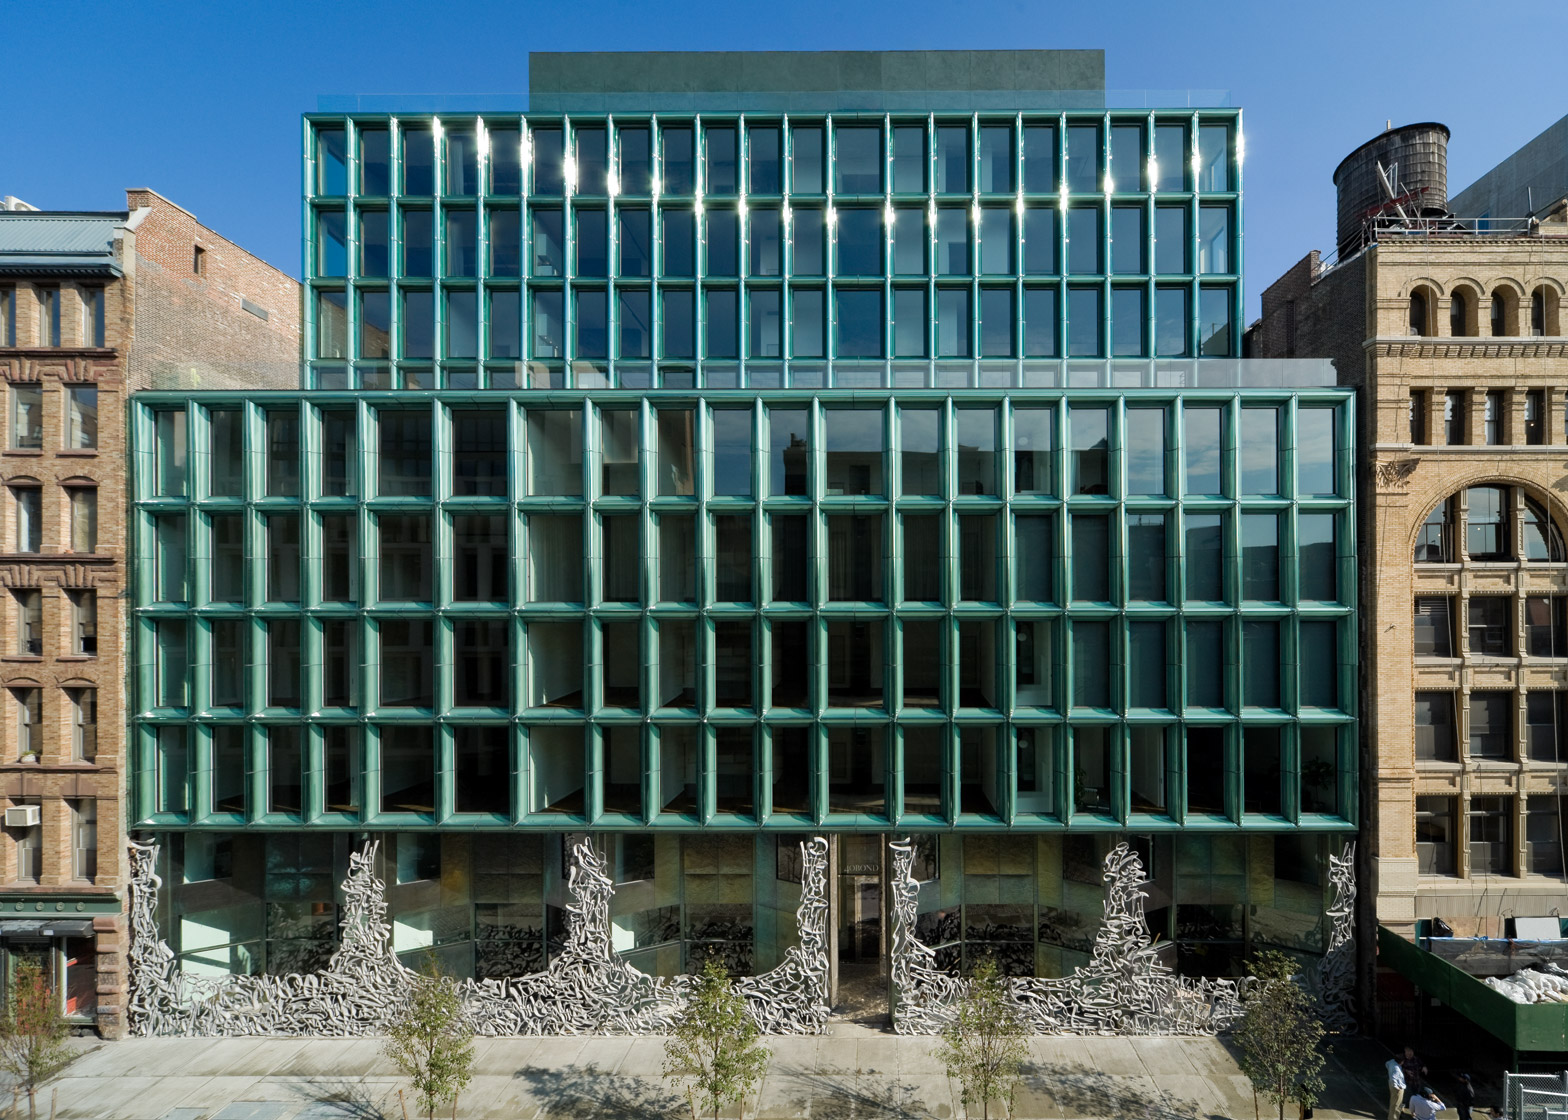 Recently Schrager has turned his attention to the luxury condominium market with a series of buildings designed by Herzog & de Meuron. 40 Bond opened in 2007